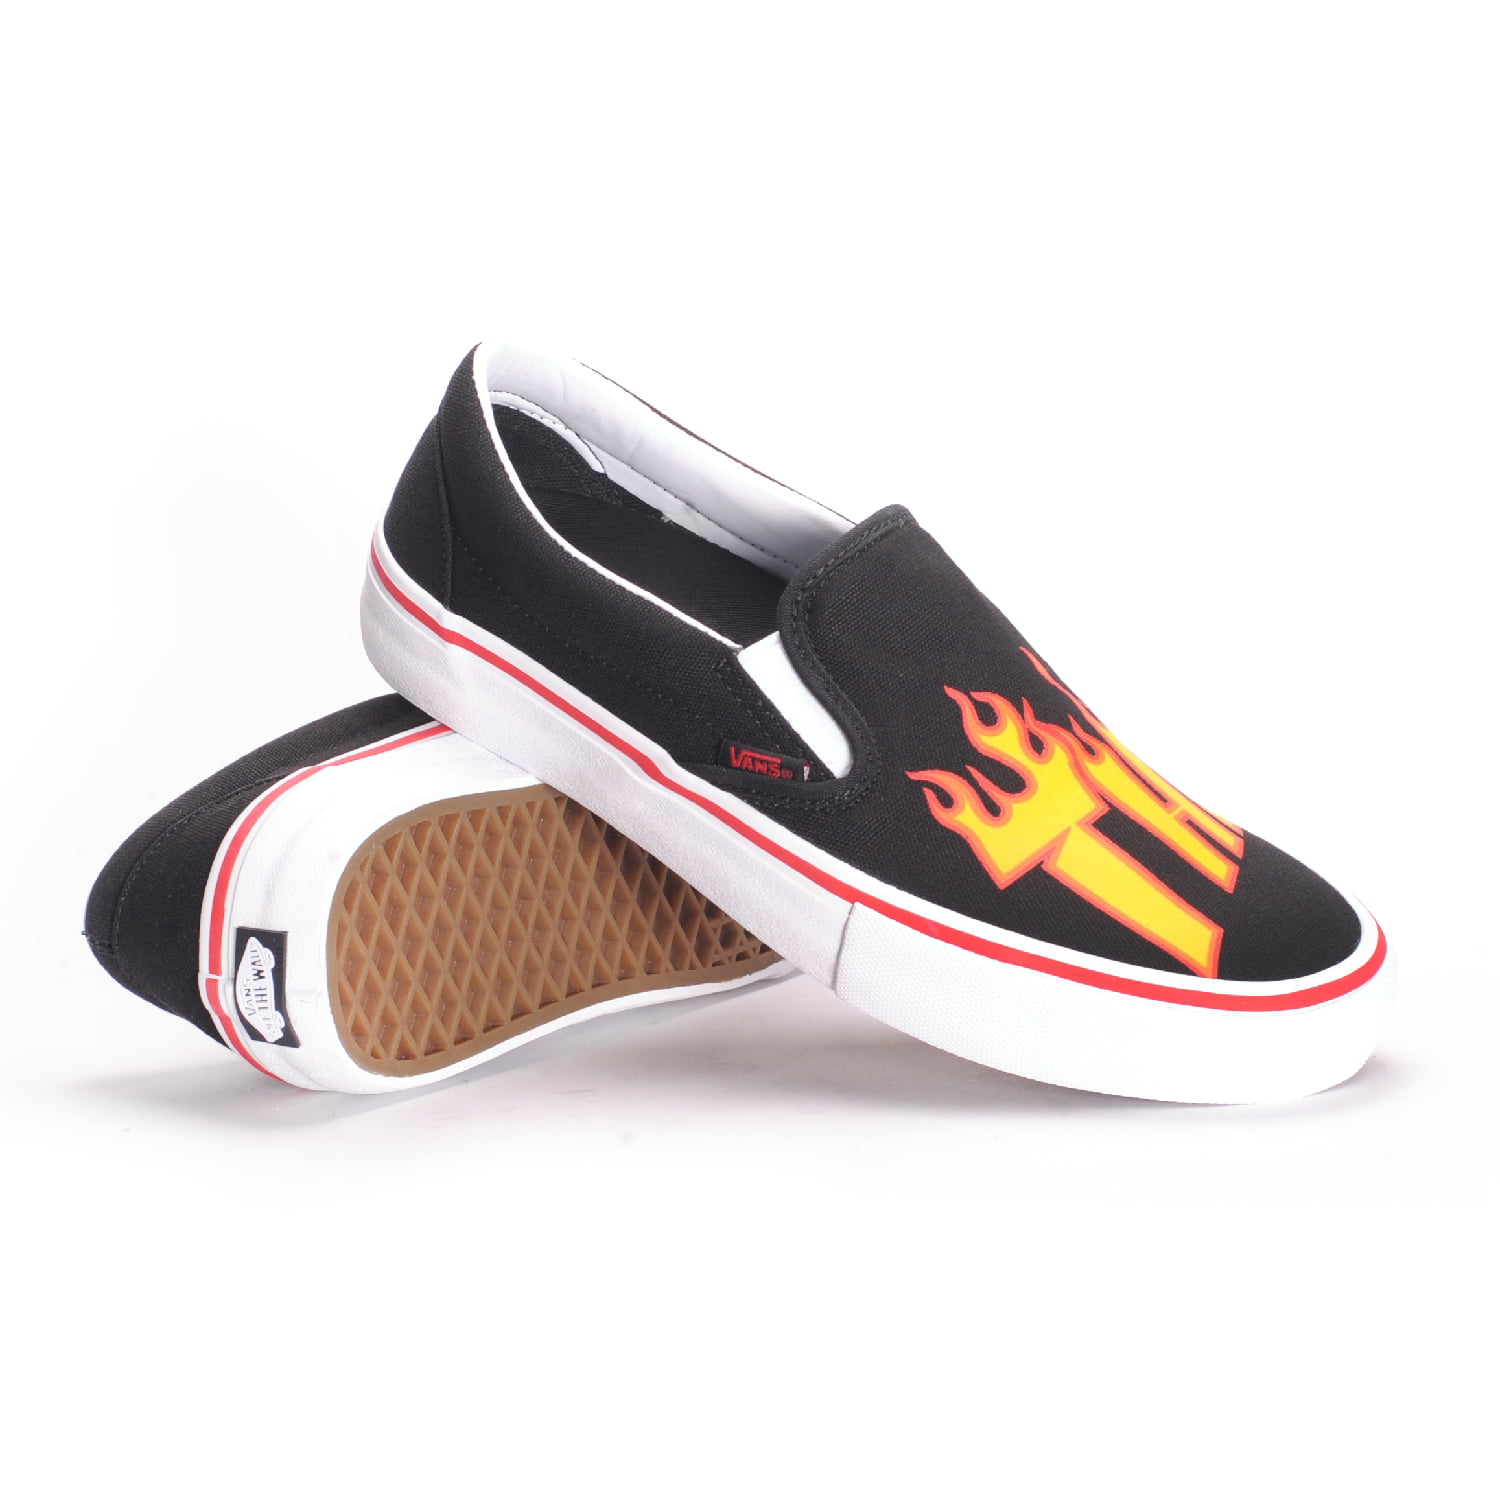 Vans Vans x Thrasher Slip On Pro (Thrasher Black) Men's Skate Shoes 11.5